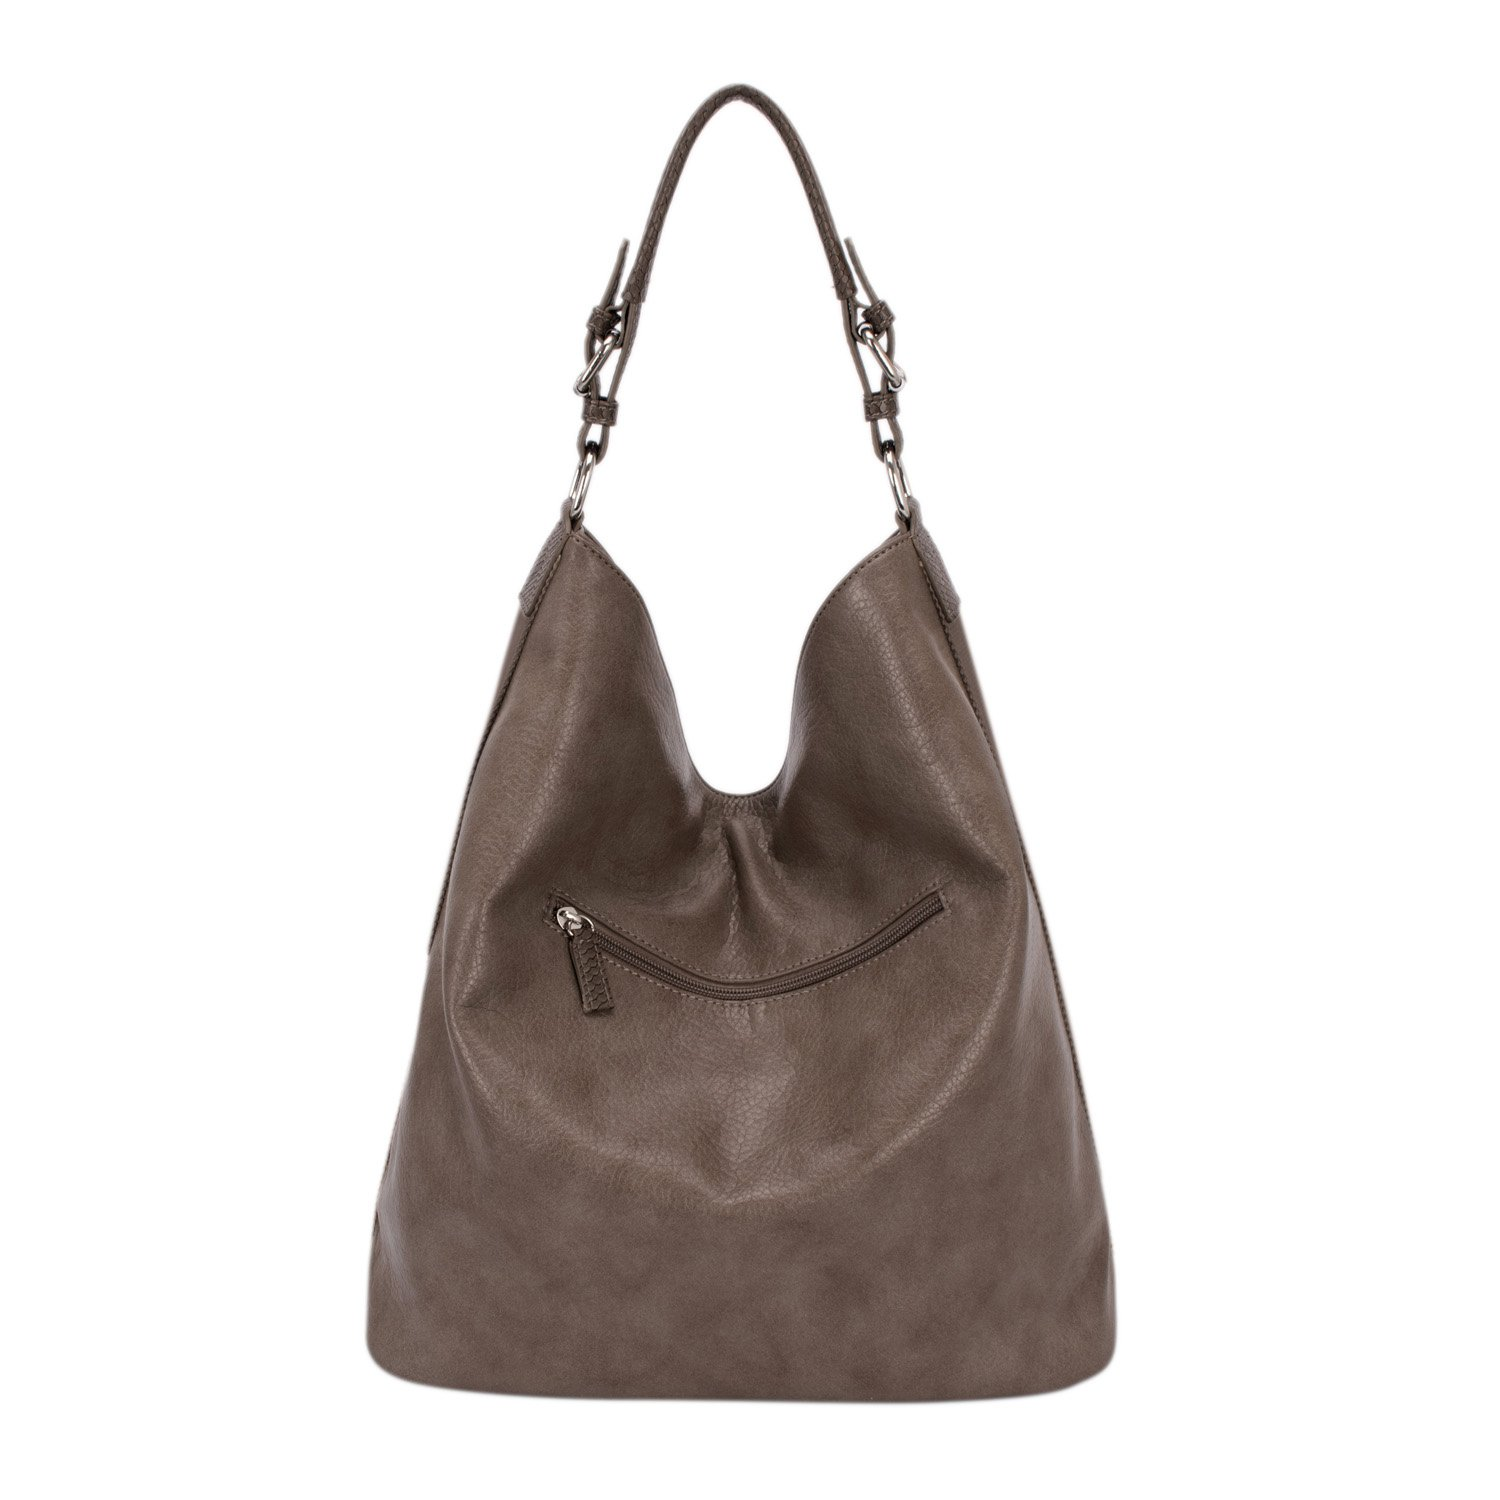 21299a6784 Amazon.com  DAVID - JONES INTERNATIONAL Vegan Leather Hobo Work Tote Top  Handle Camel Tan Large Bags for Women  Shoes